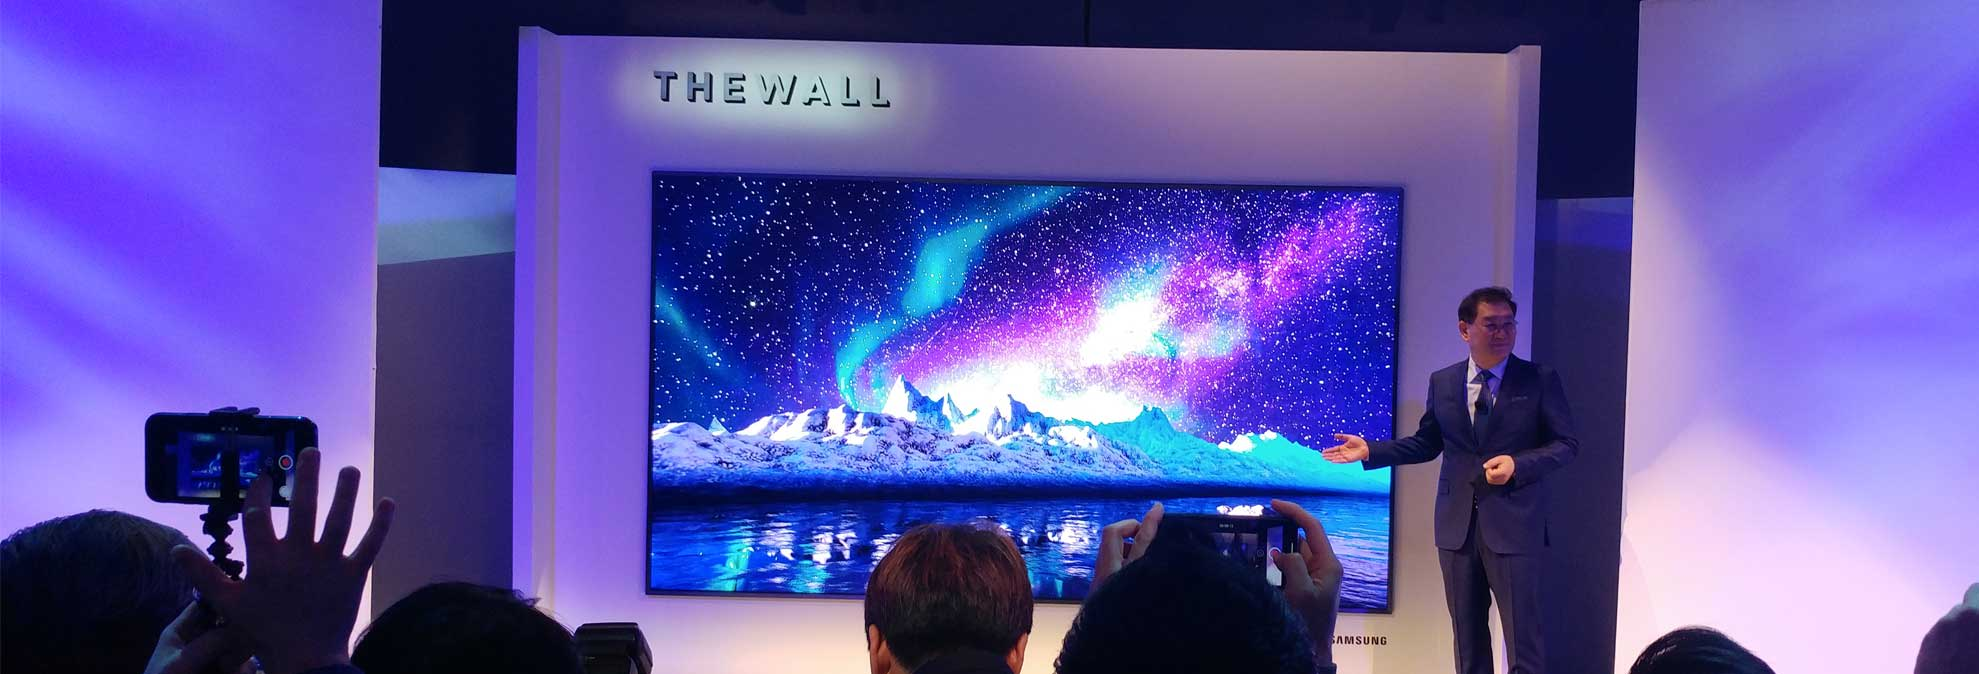 New TV Tech Challenges OLED in 2018 - Consumer Reports